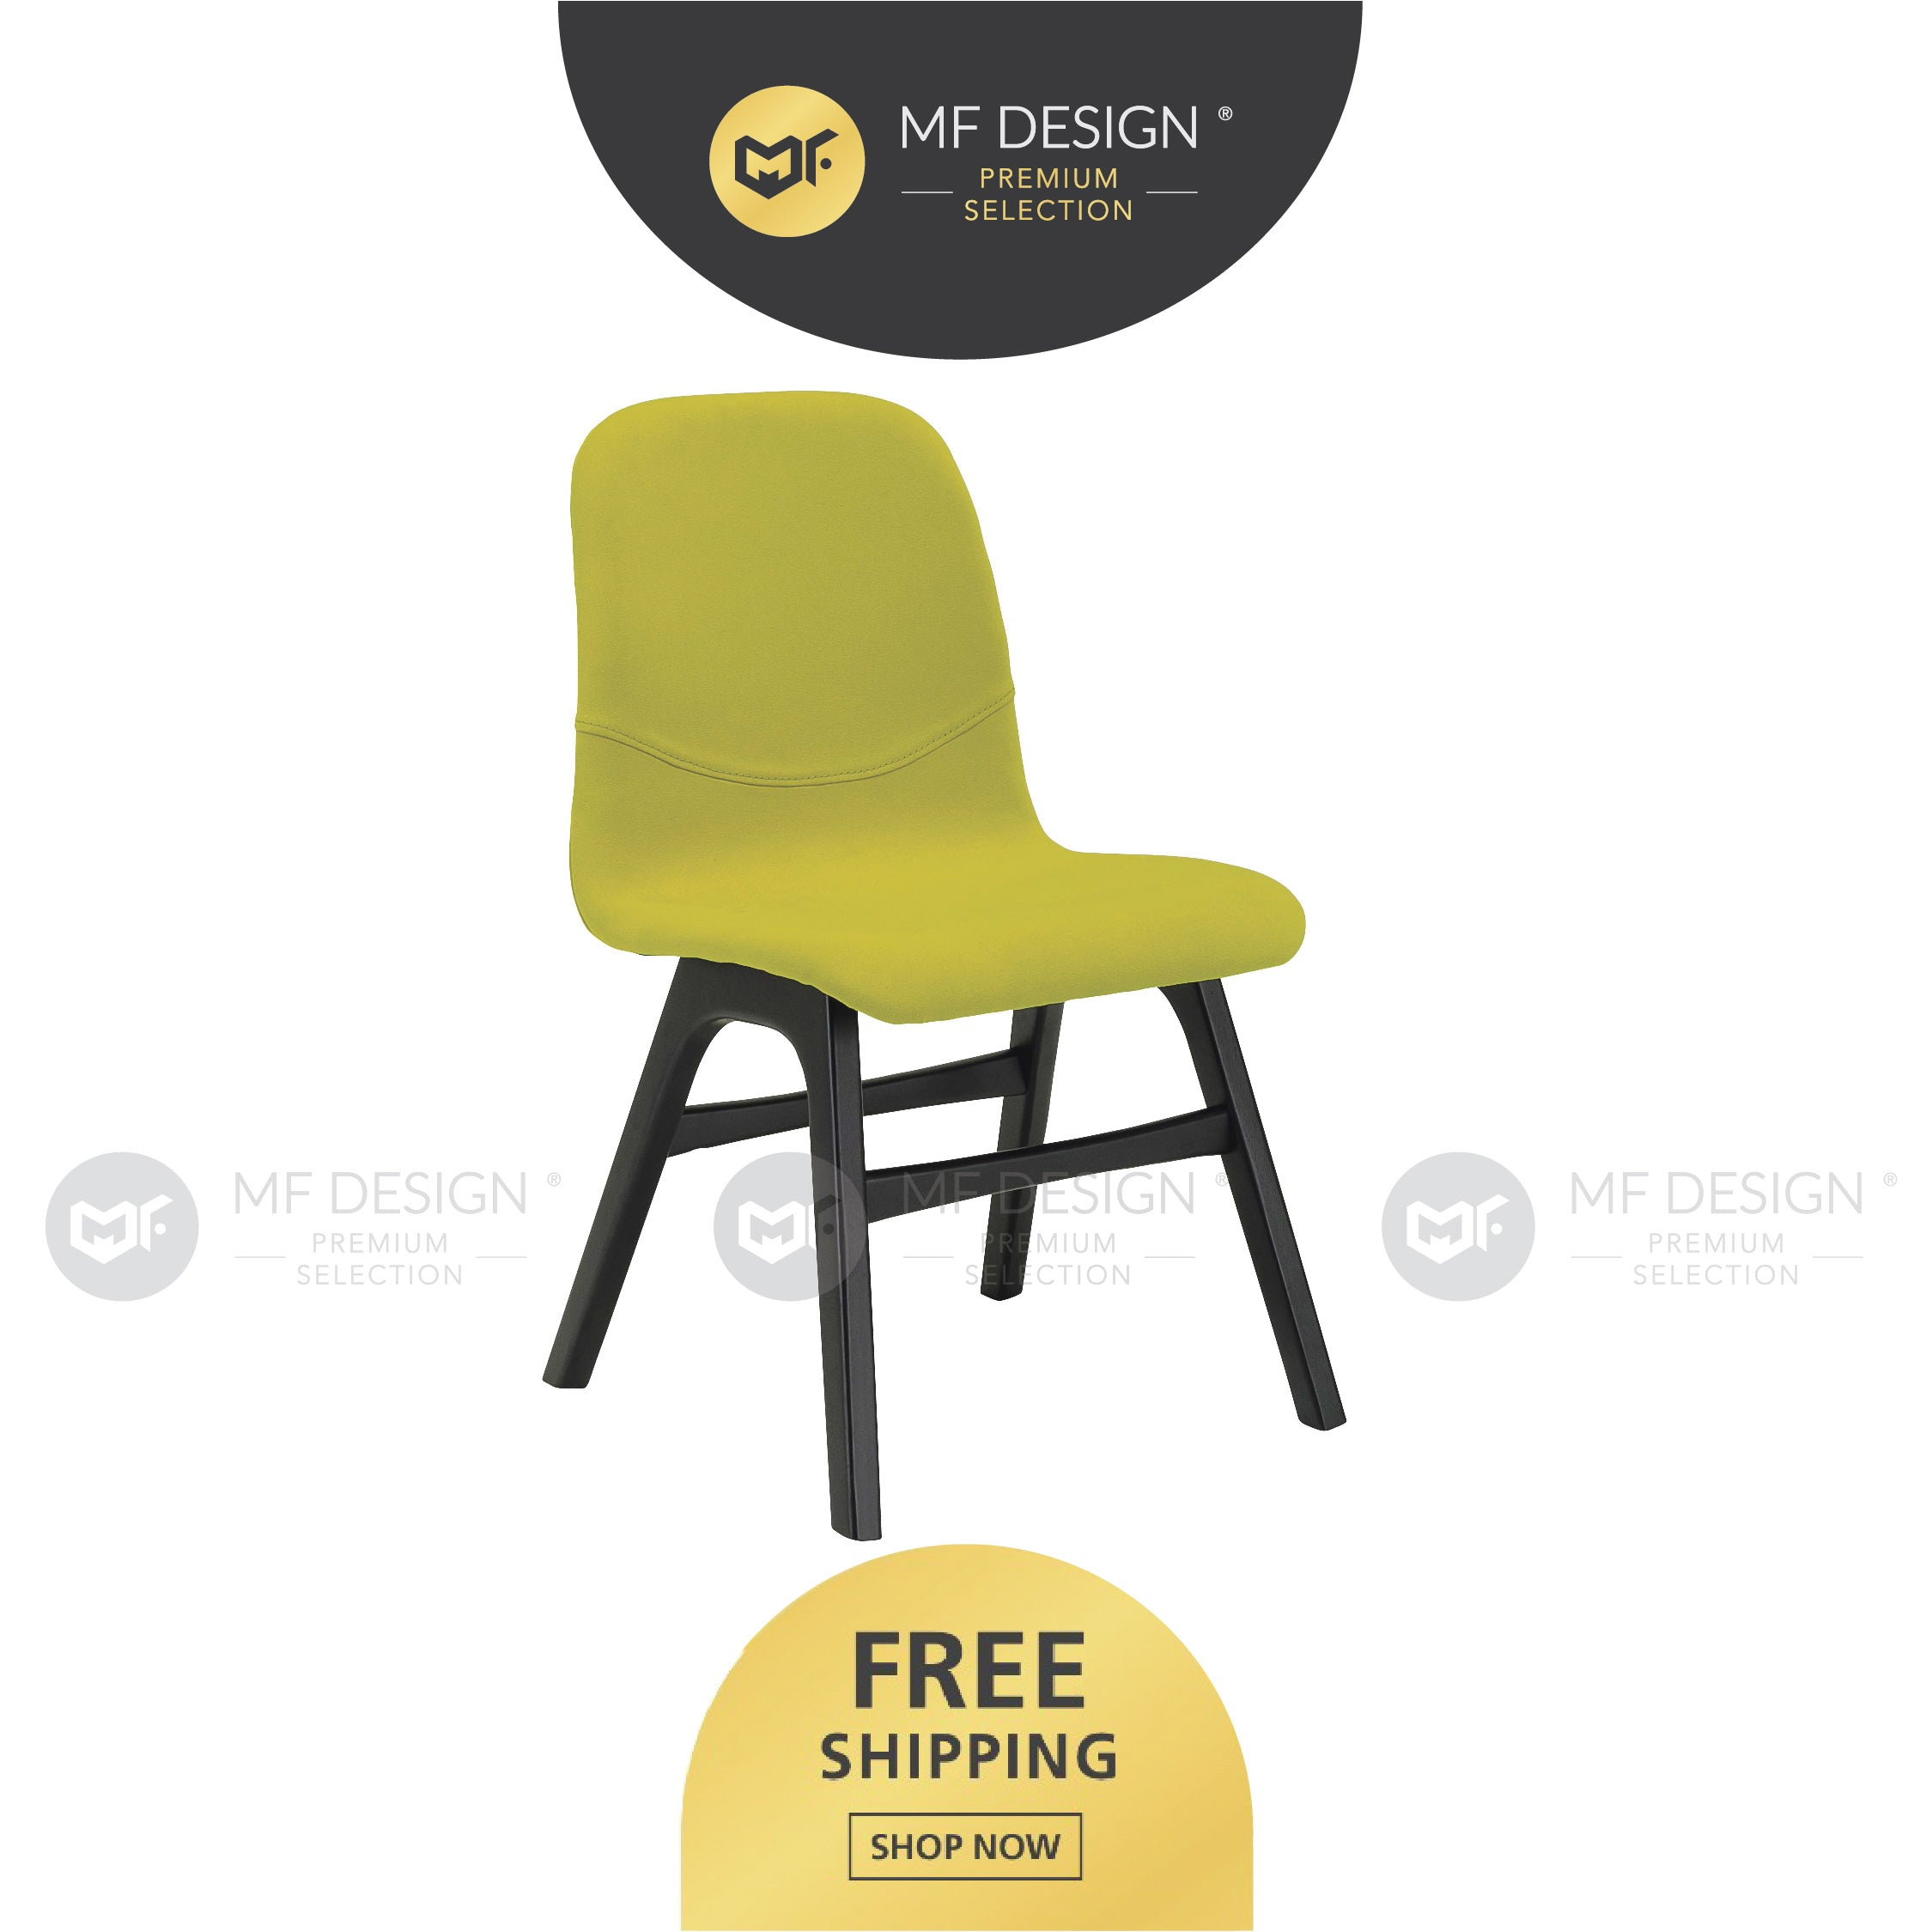 MFD Premium Alina Dining Chair / kerusi / chair